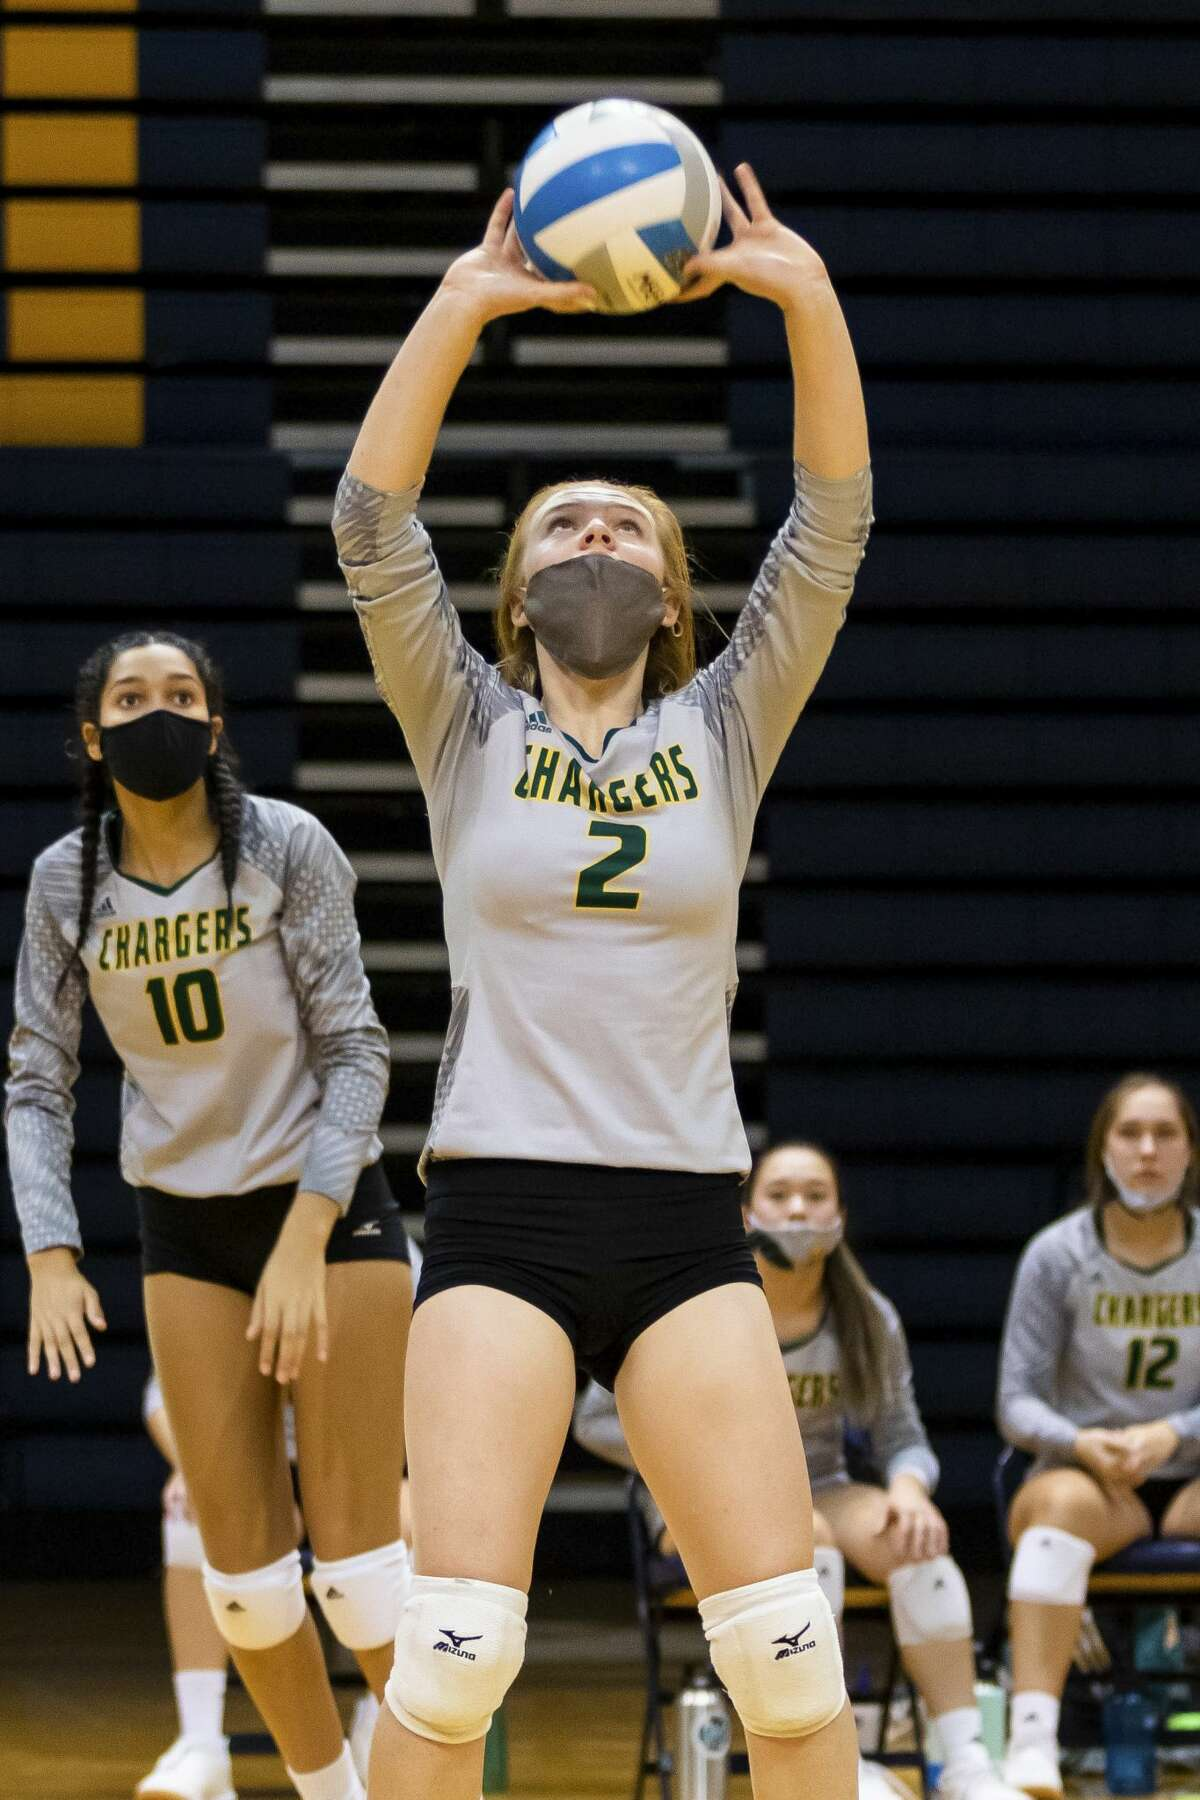 Dow's Alexa Kolnitys sets the ball during a match against Mount Pleasant Monday, Nov. 2, 2020 at Mount Pleasant High School. (Cody Scanlan/for the Daily News)